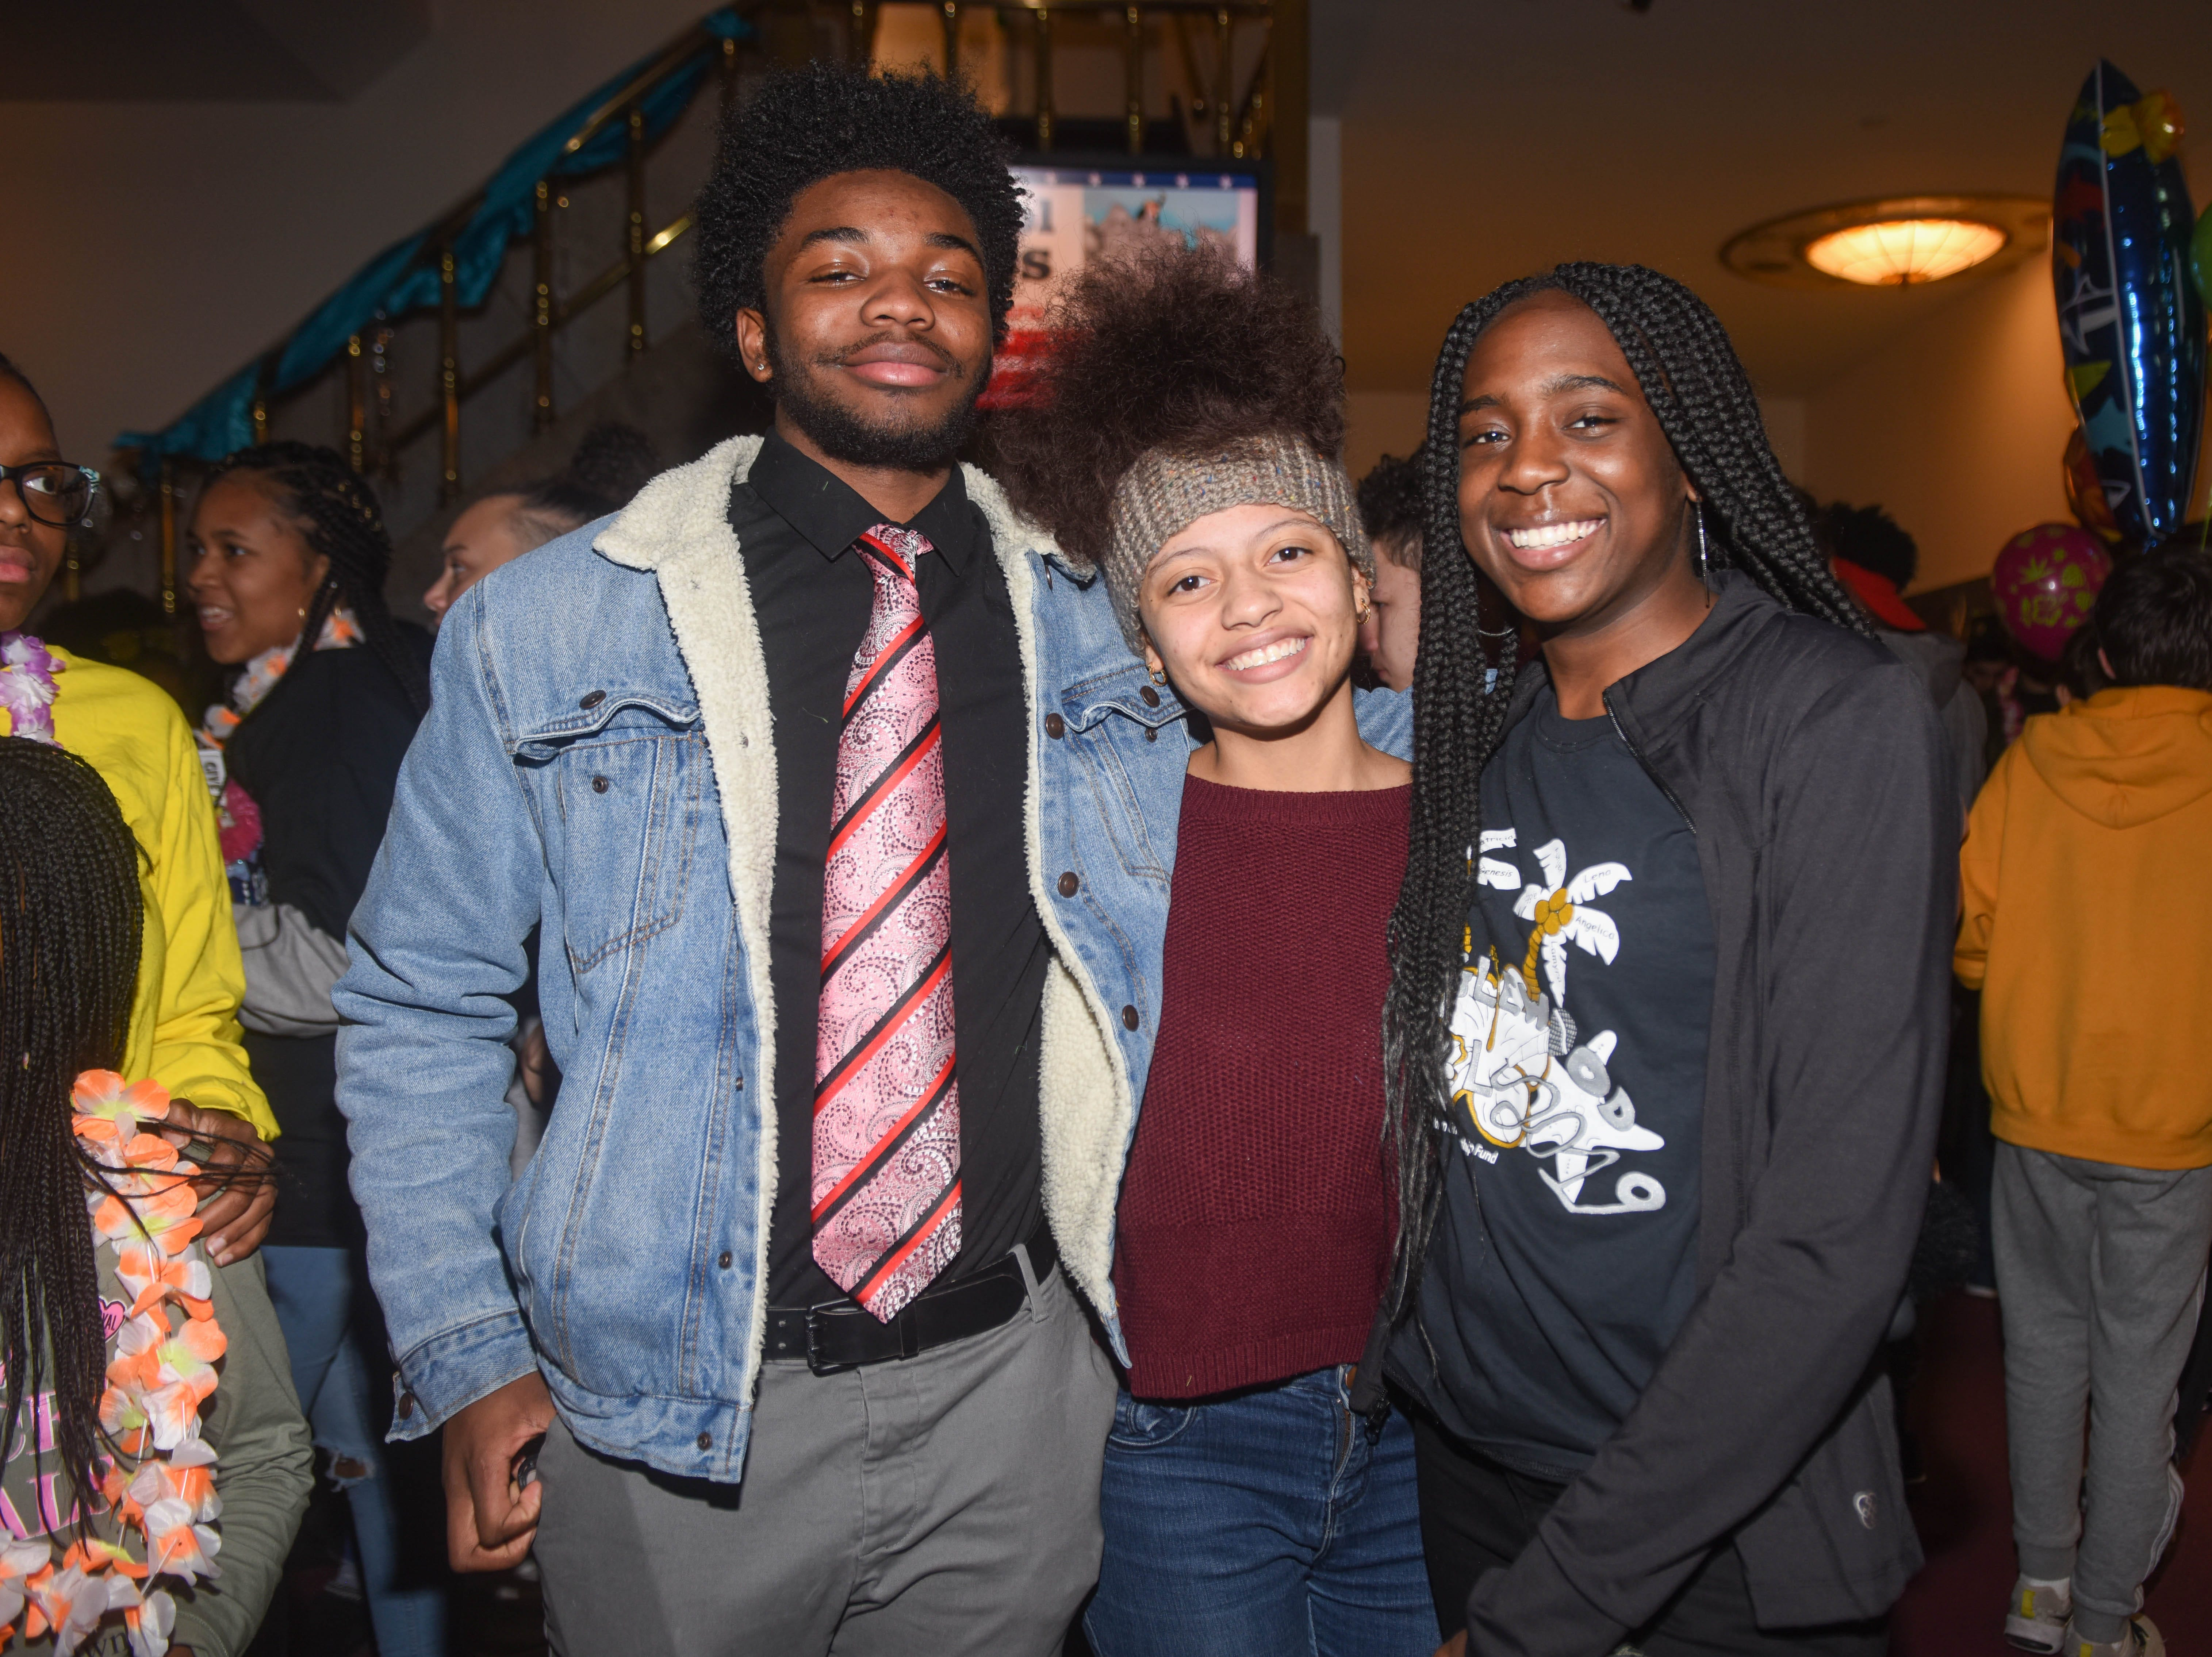 Jeff, Veronica and Lilly. The 2019 Englewood Idol was held at bergenPAC theater. The singing competition is open to any high school student who currently lives or goes to school in Englewood, NJ. This years winner was Genesis Capellan. 01/11/2019